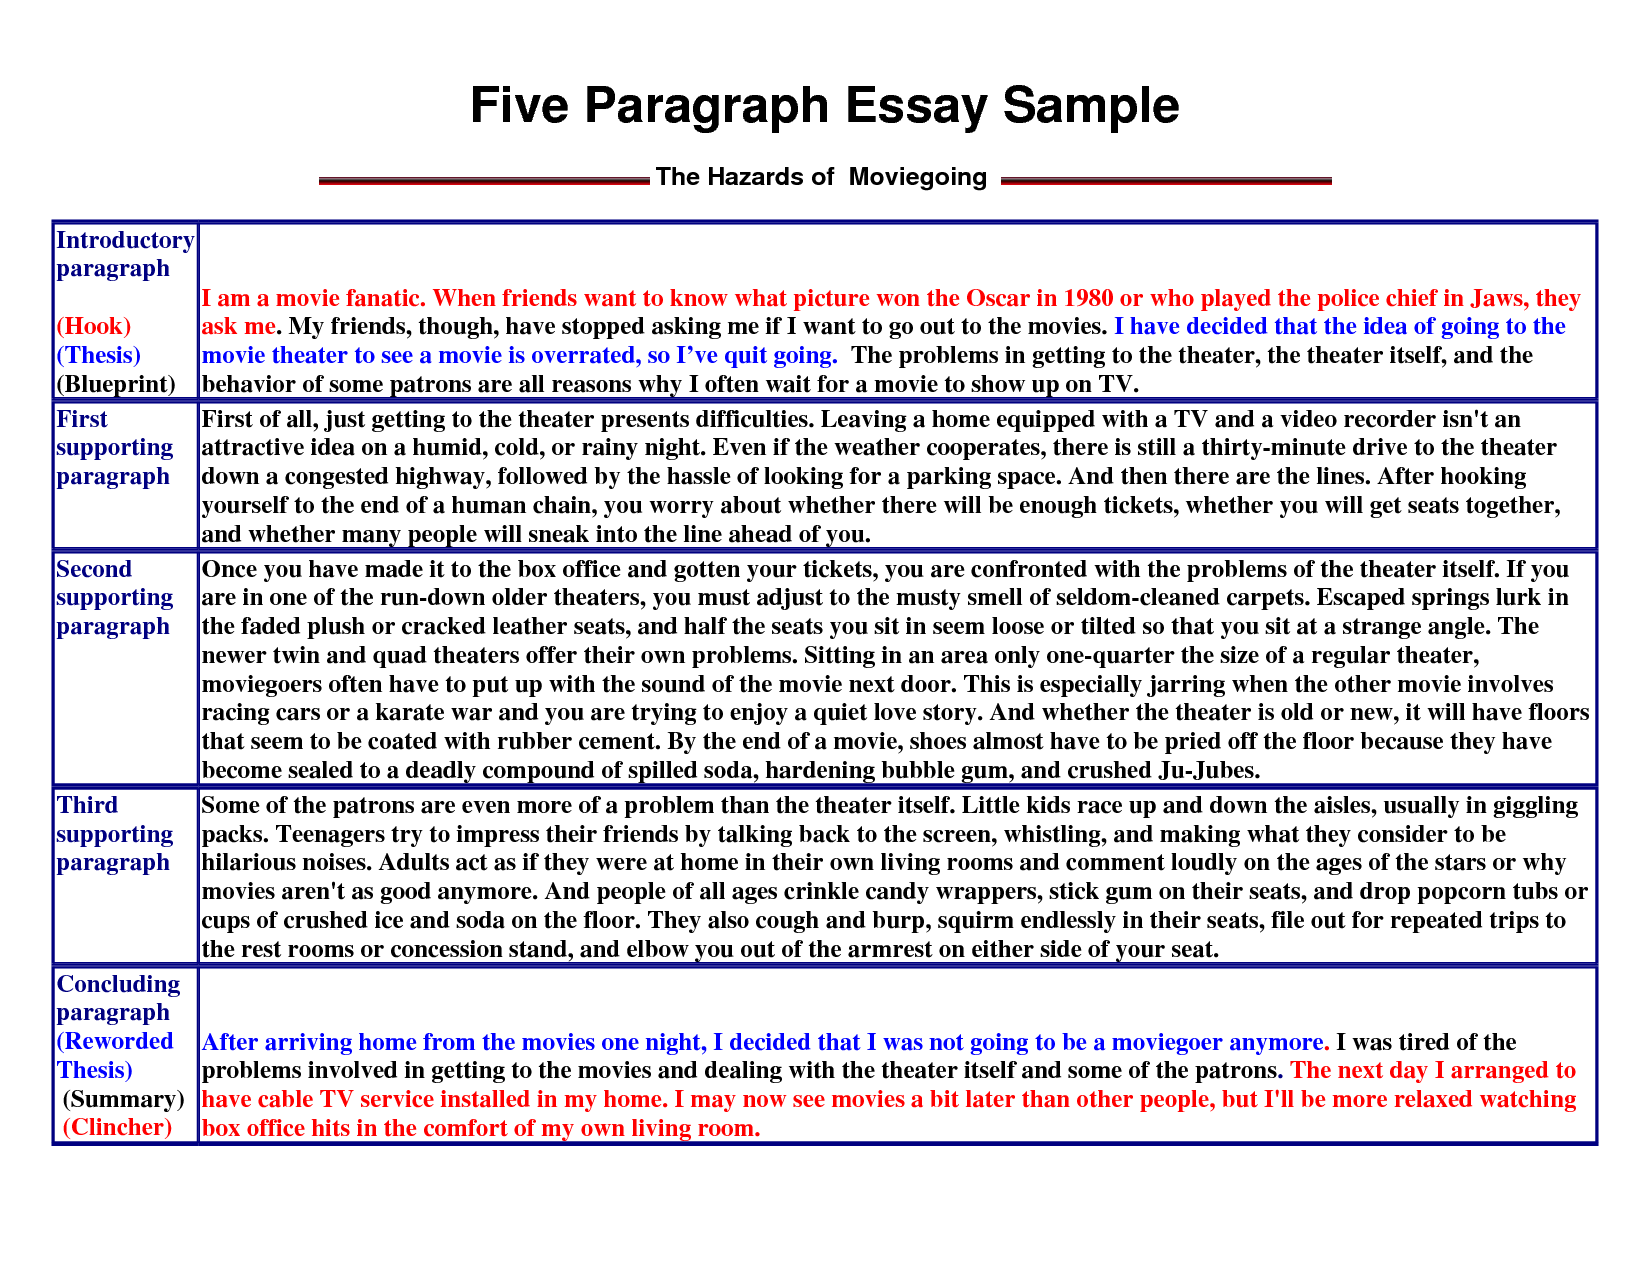 Crafting a 5-paragraph Essay with no trouble